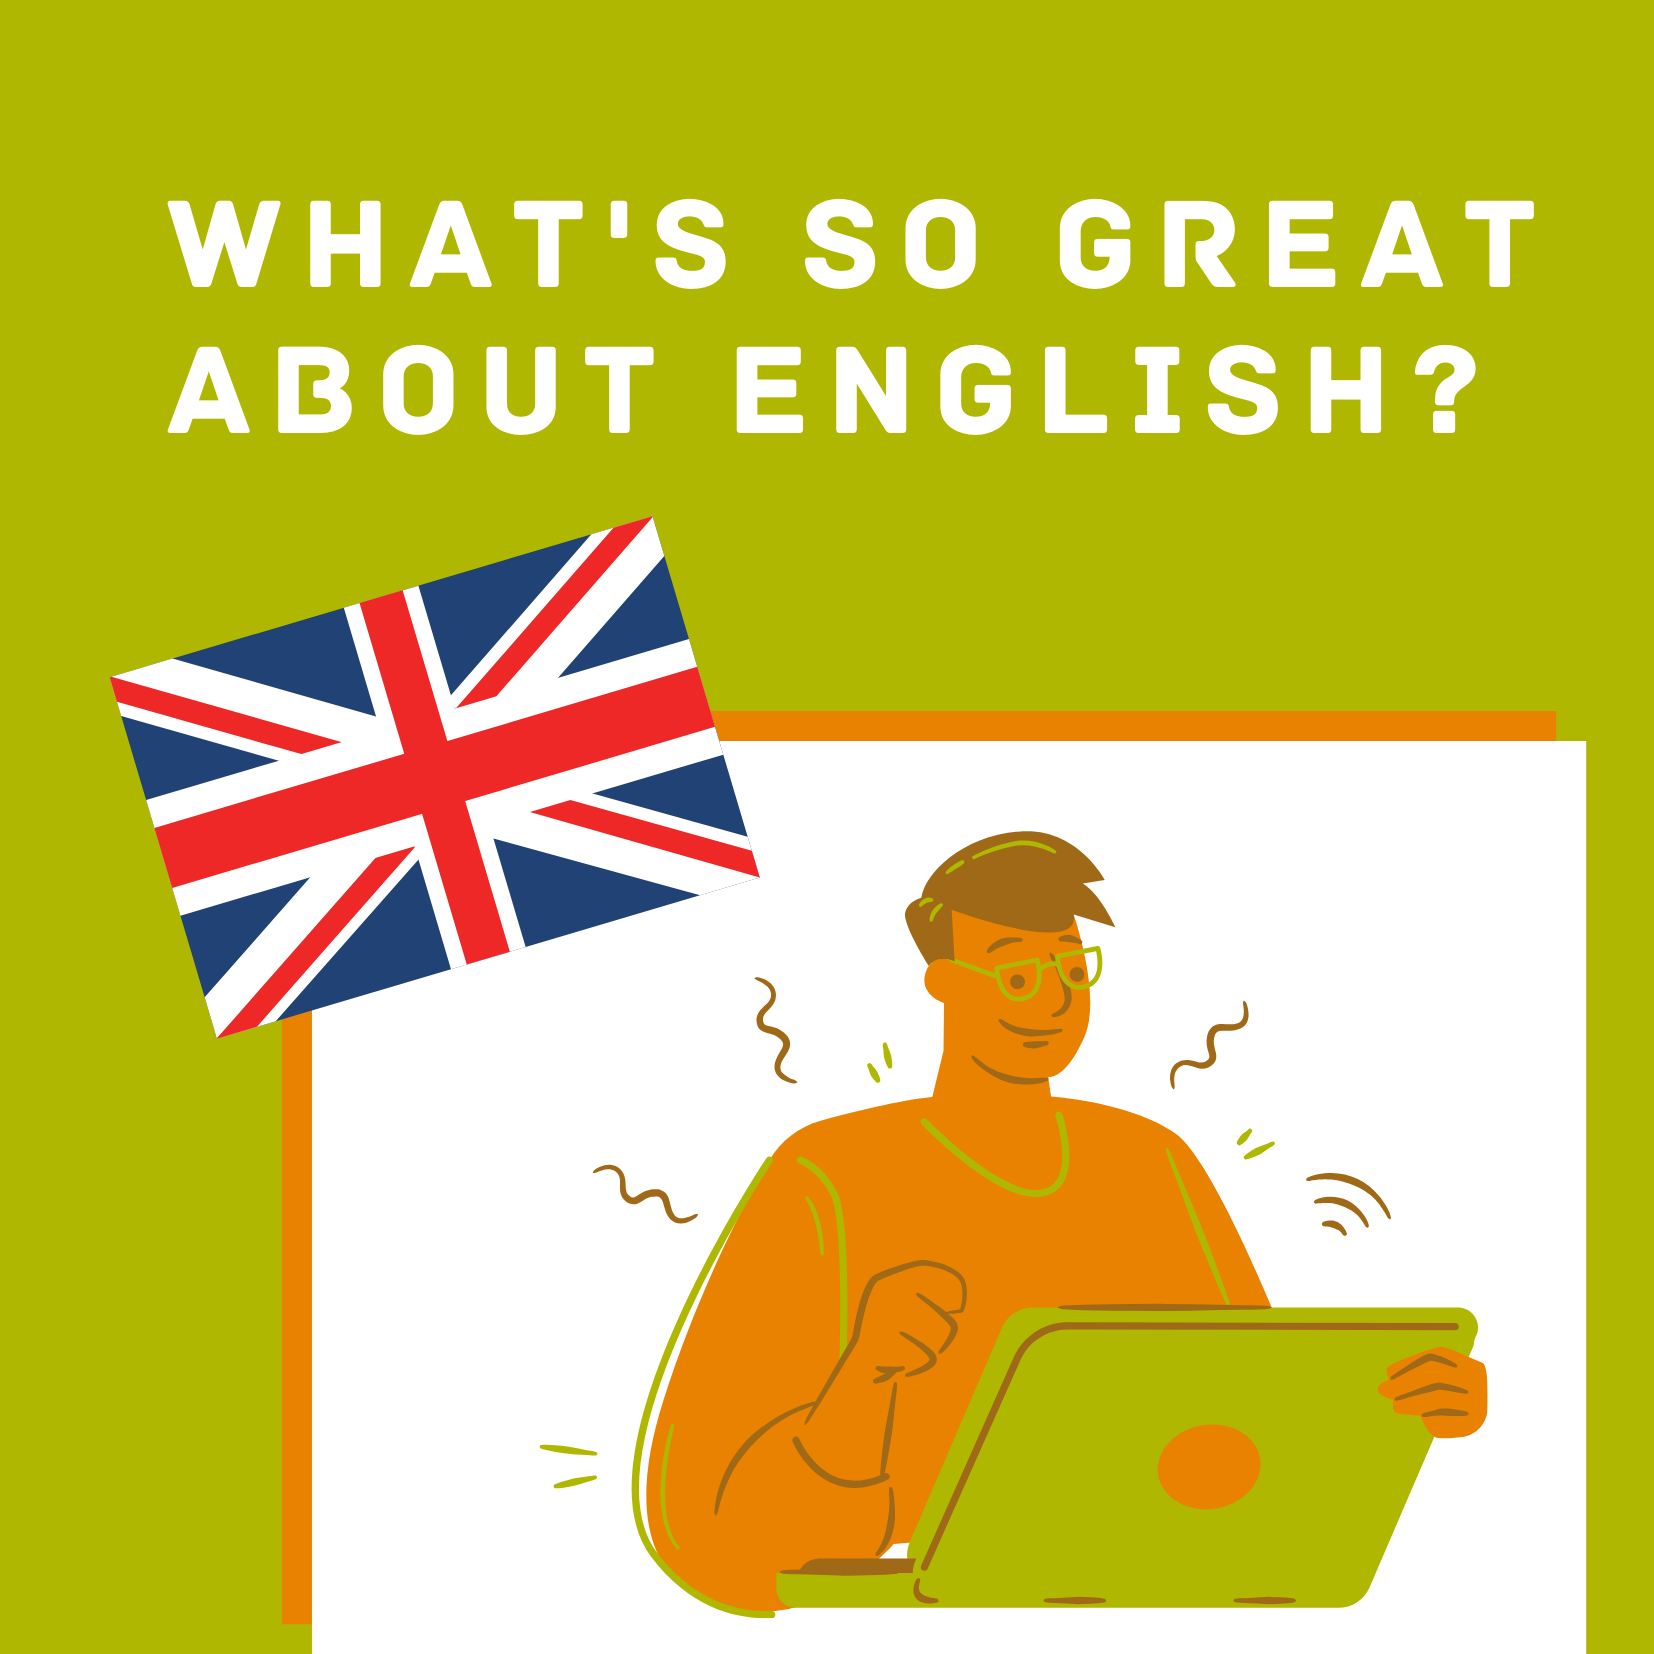 What's so great about English?